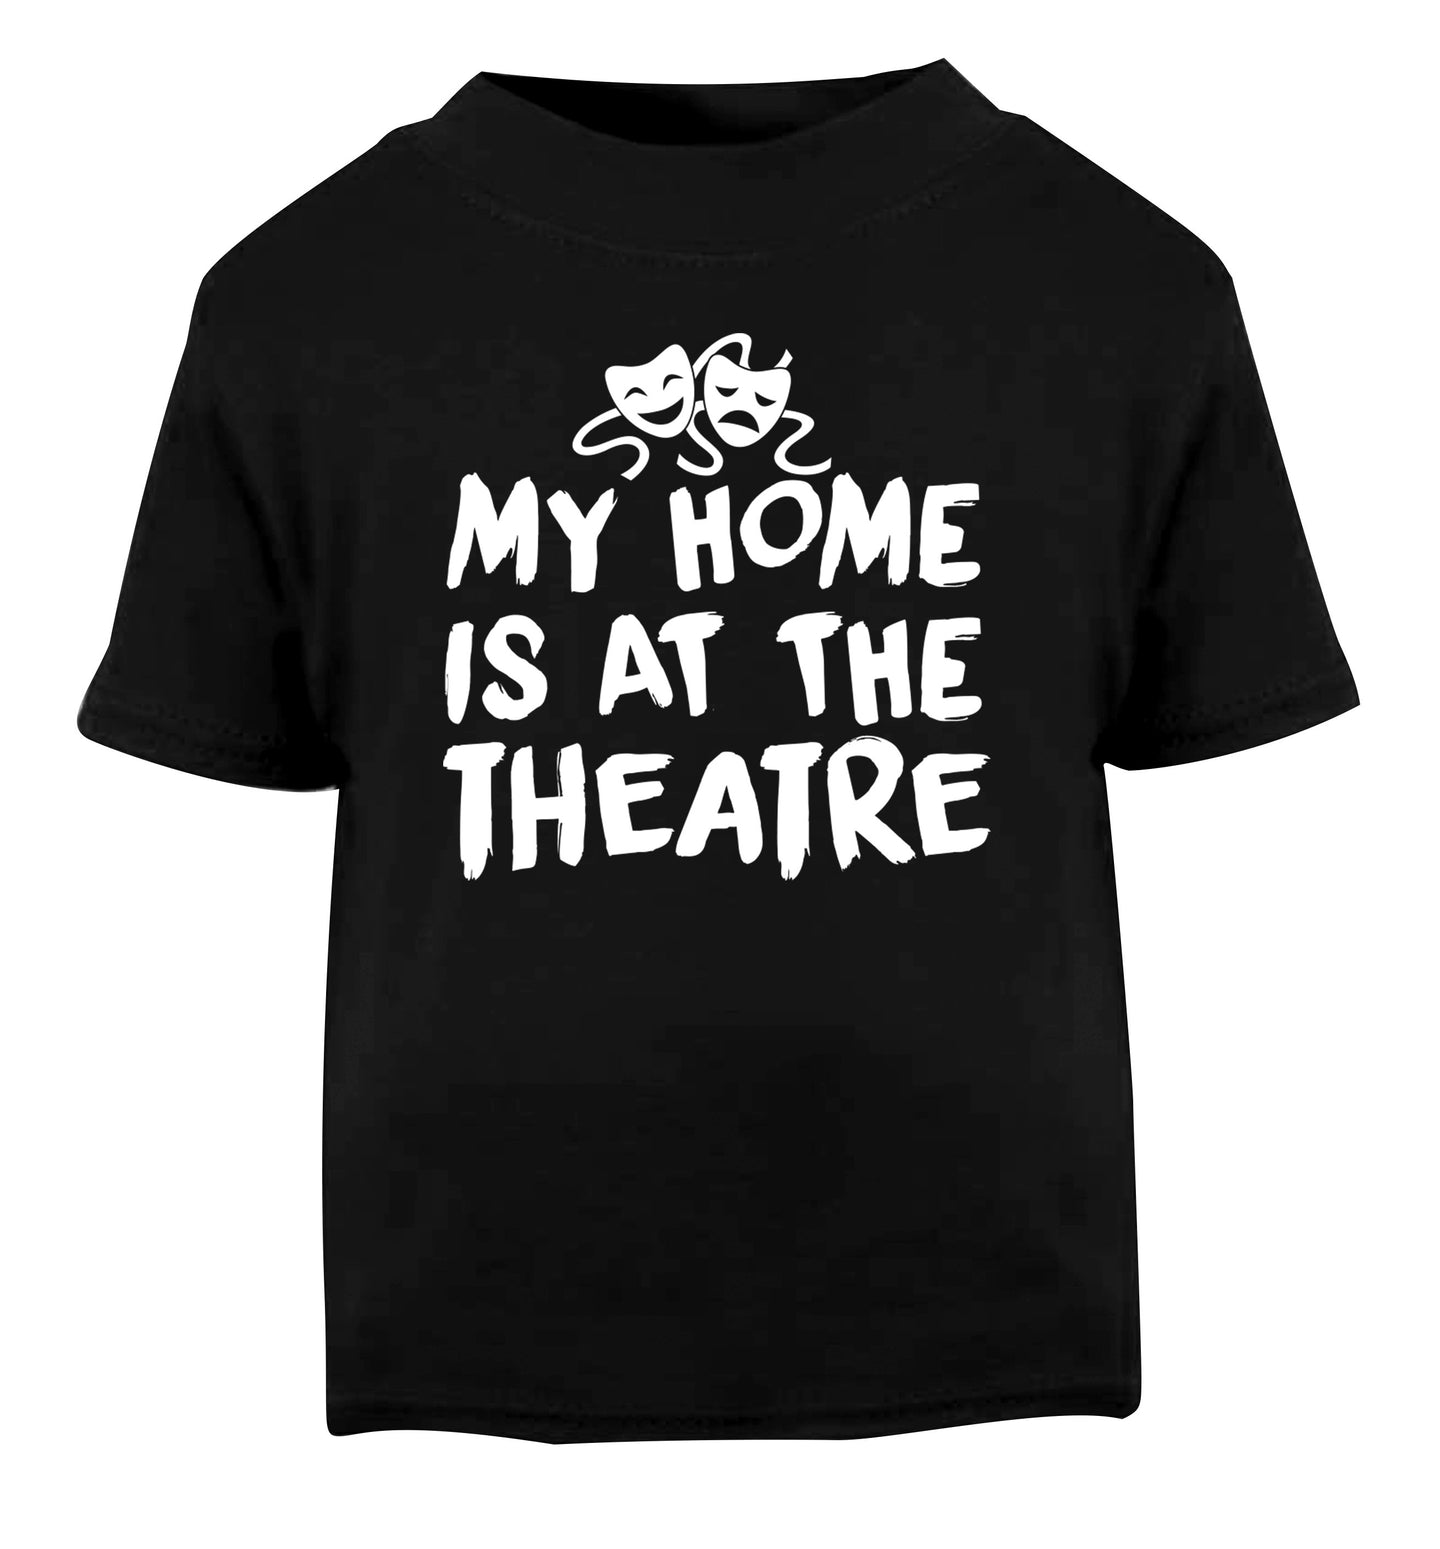 My home is at the theatre Black Baby Toddler Tshirt 2 years